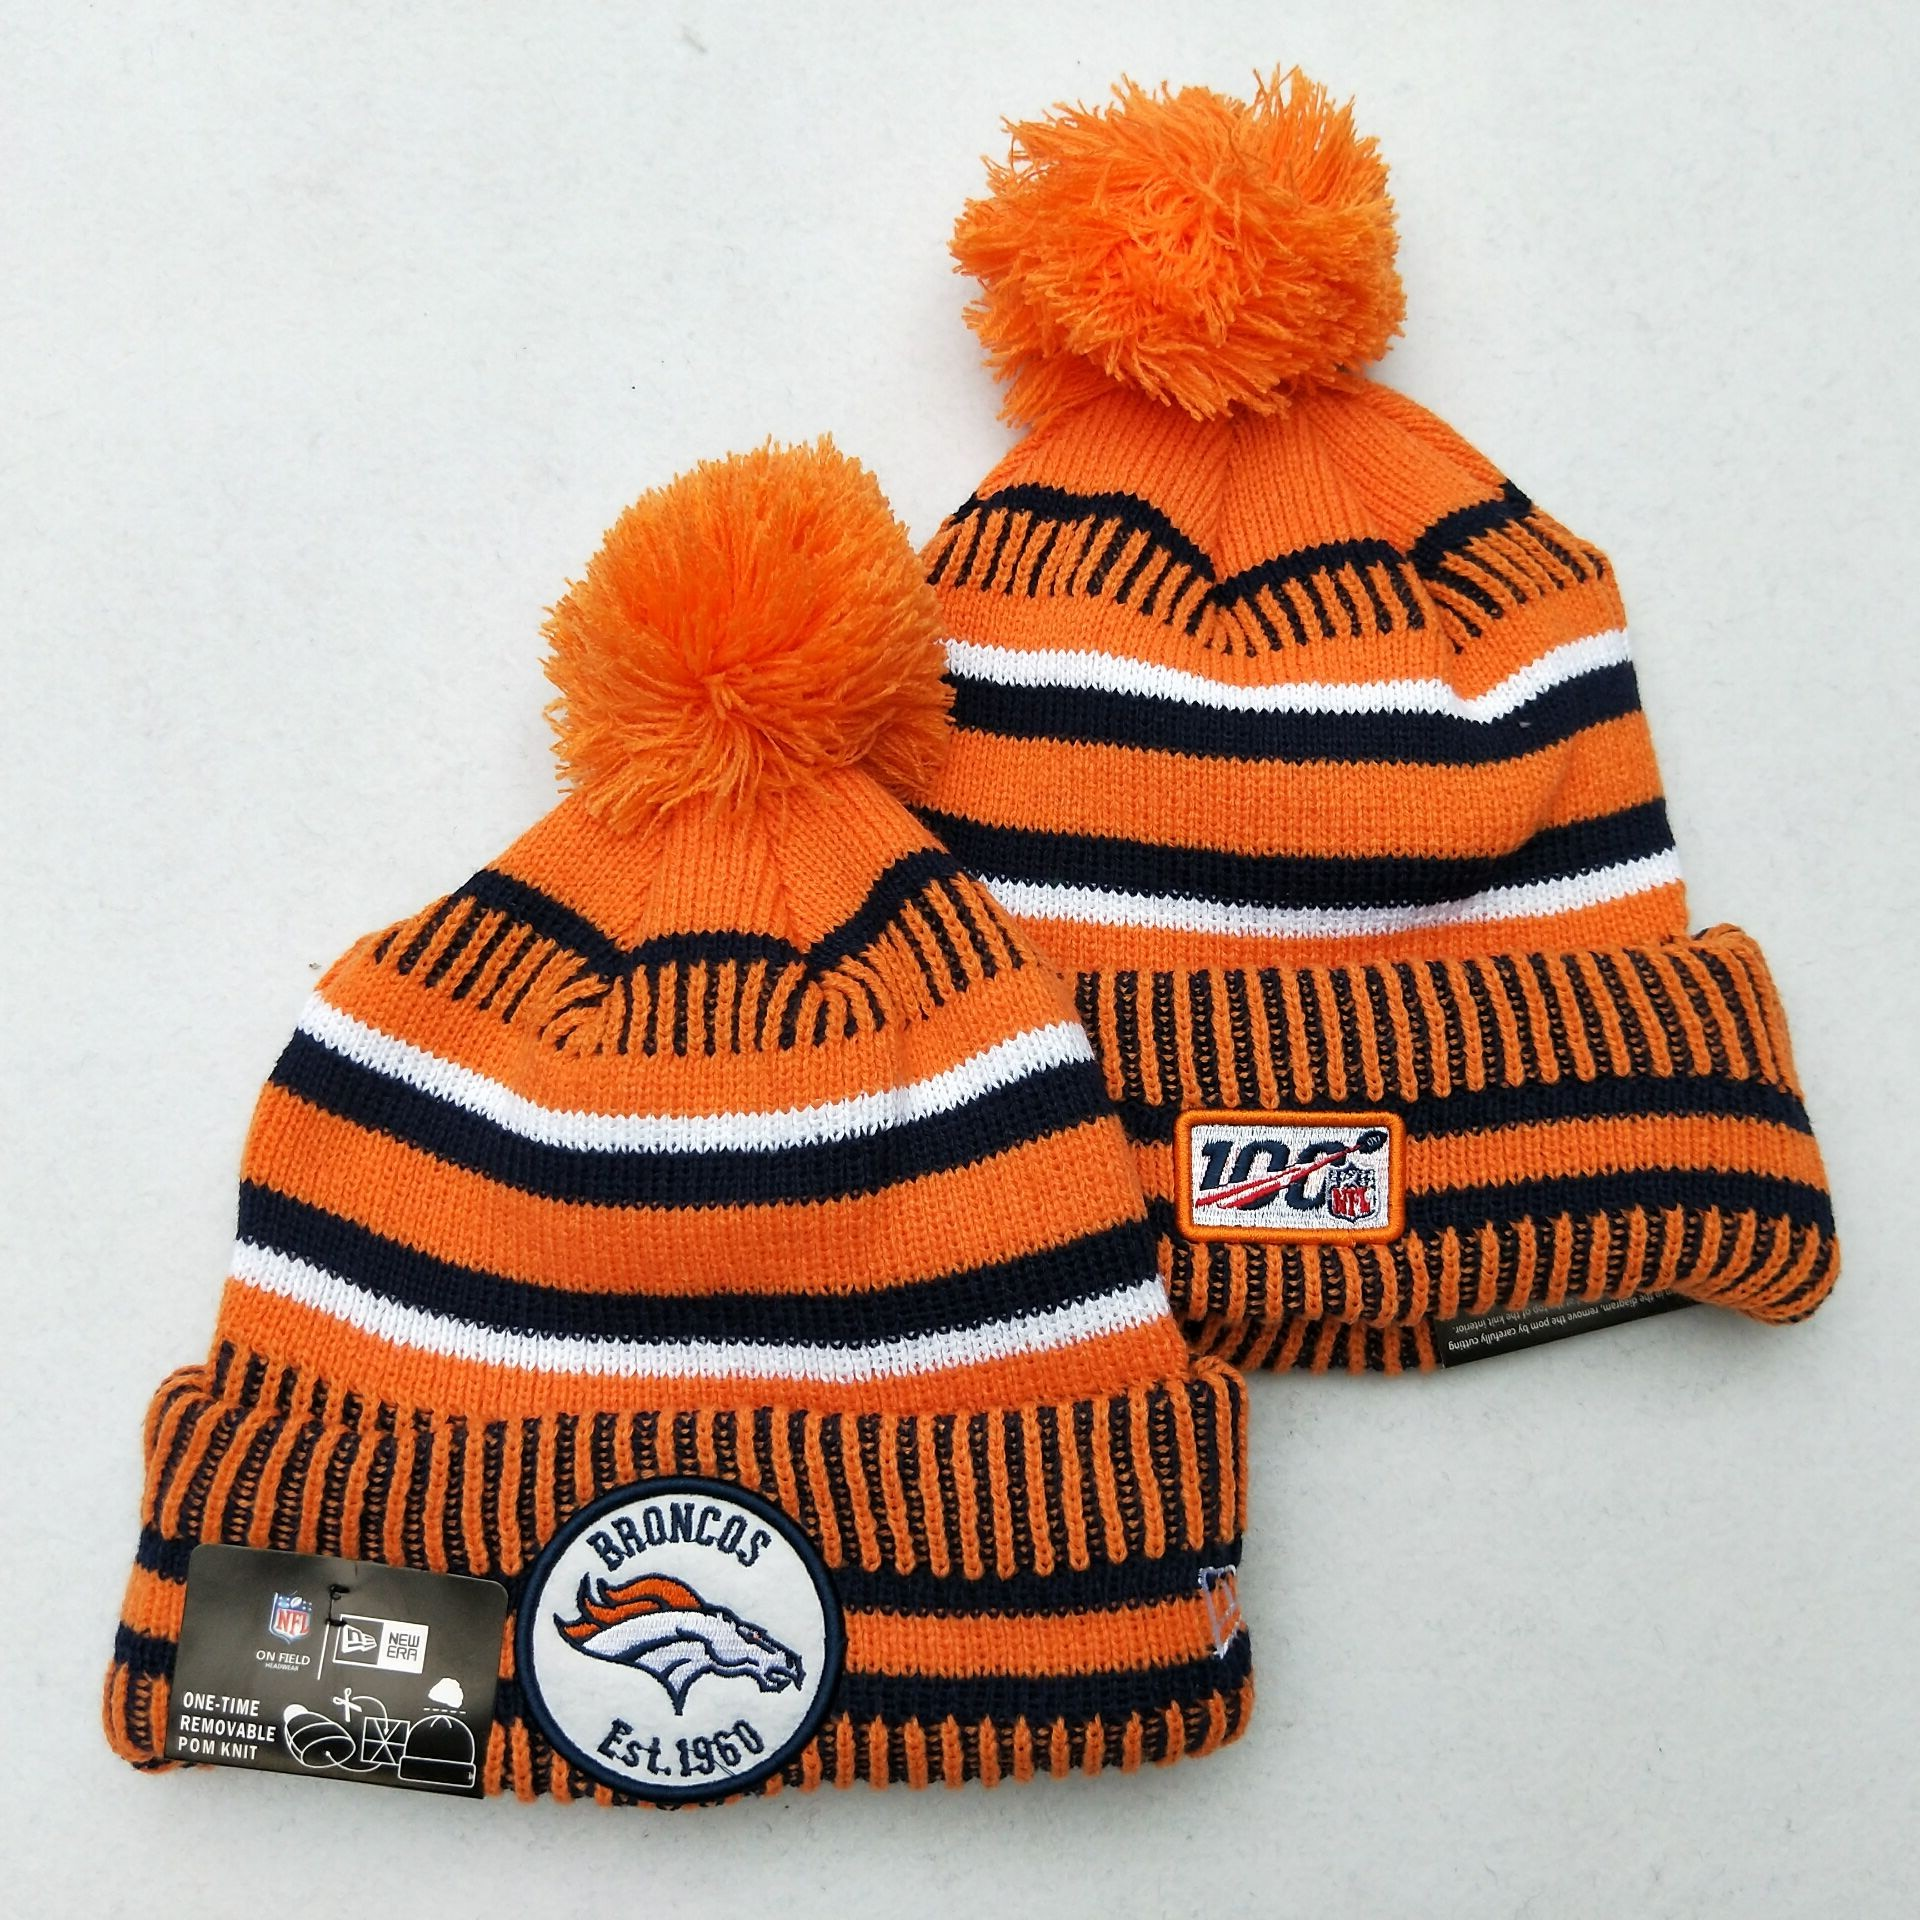 Broncos Team Logo Orange 100th Season Pom Knit Hat YD